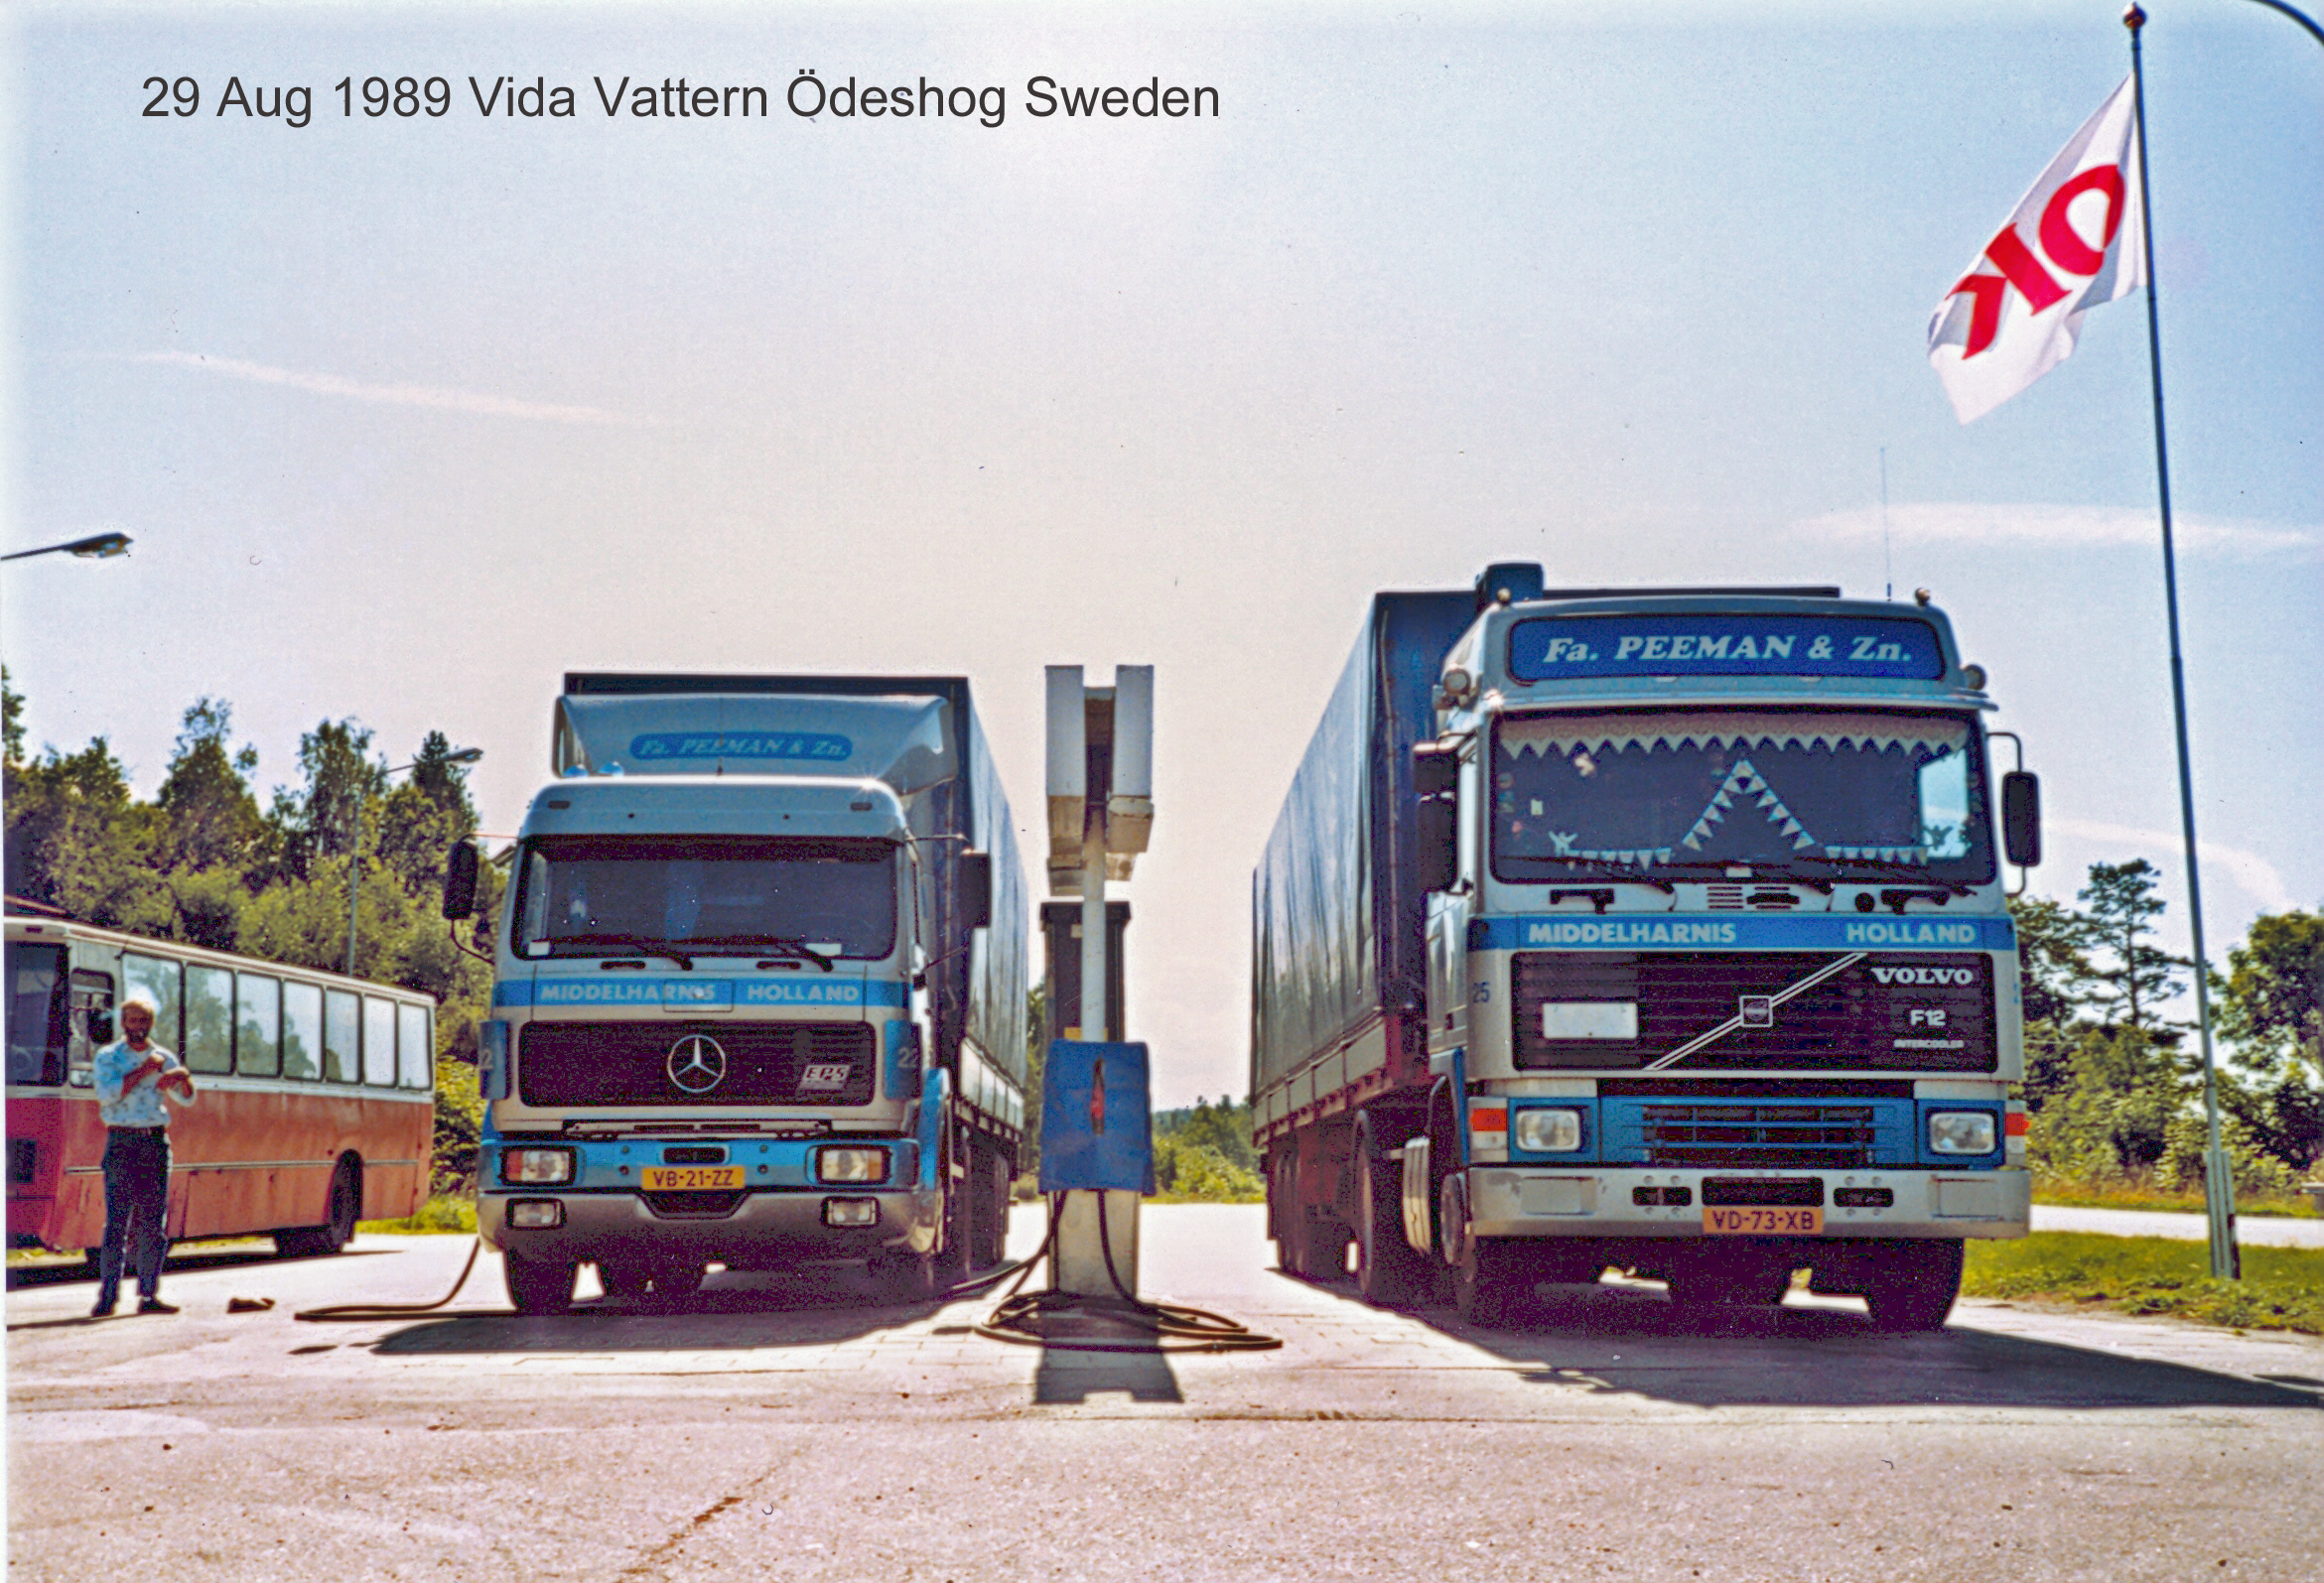 Peeman-Truck-Gasoline-stop-E4-northbound-Granna-Sweden-002--29-aug-1989